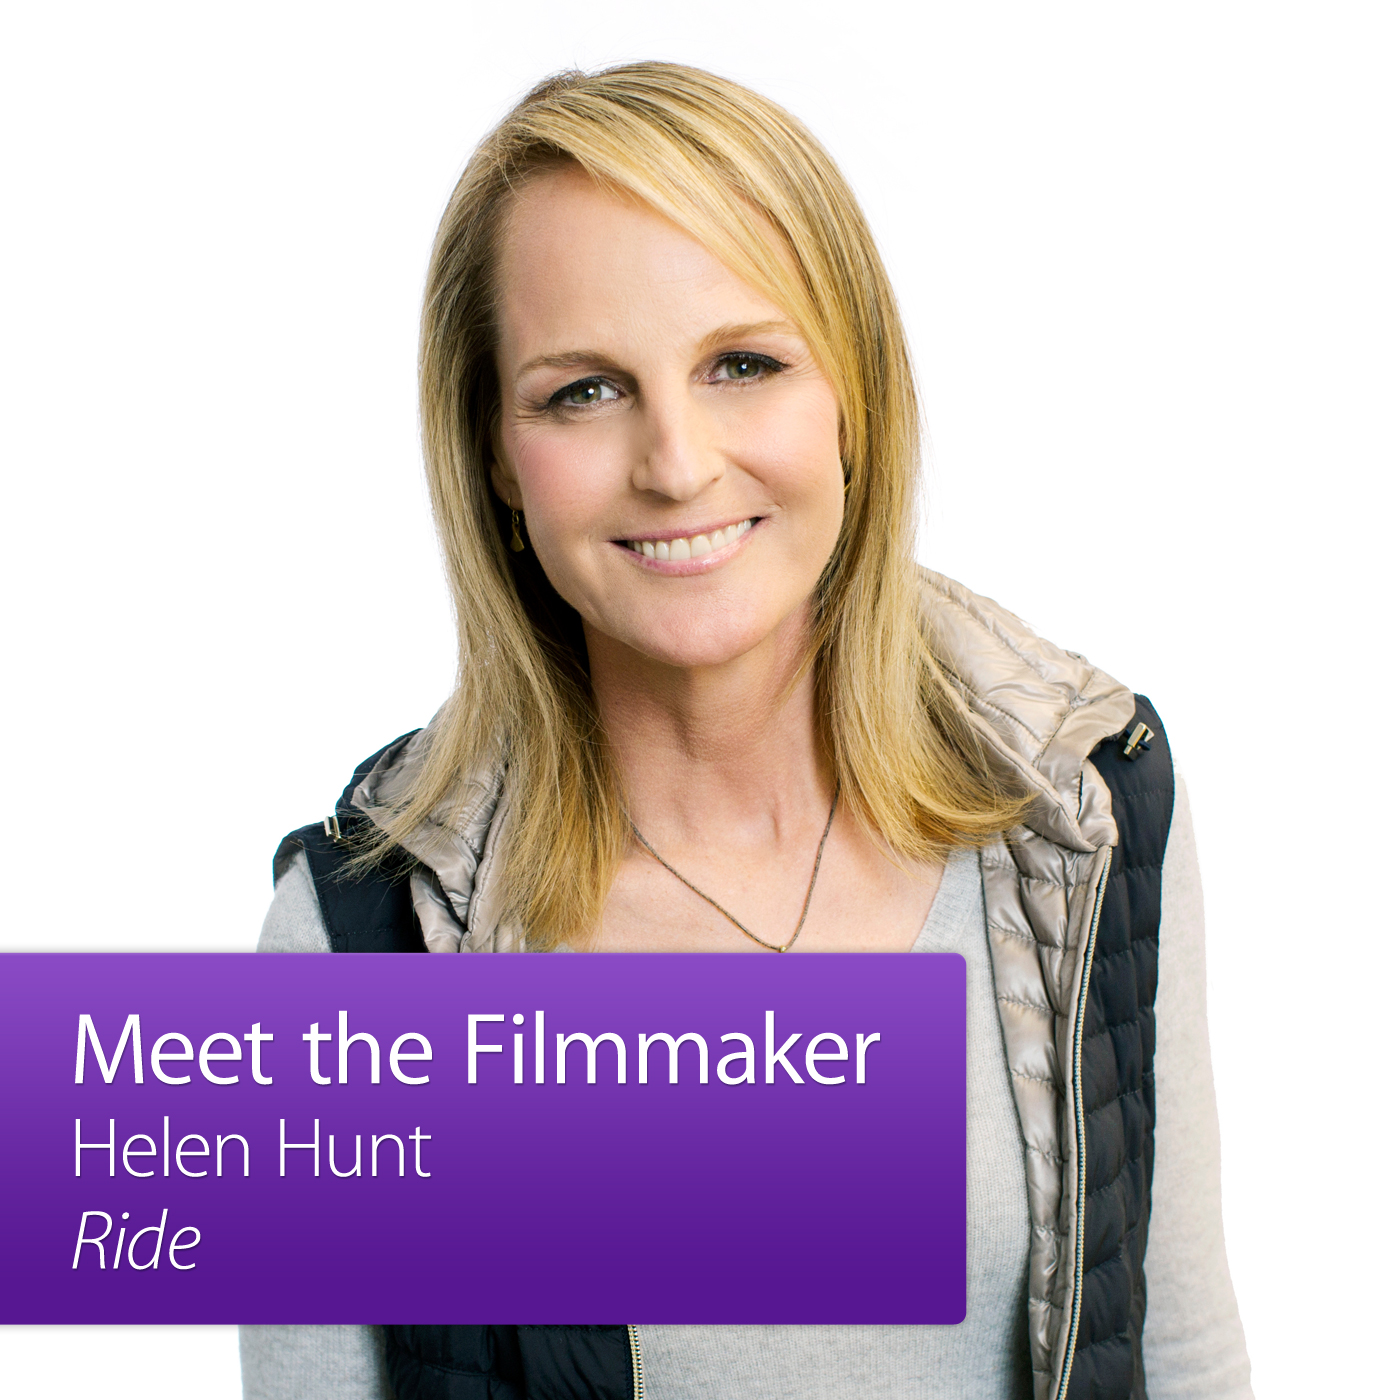 Ride: Meet the Filmmaker